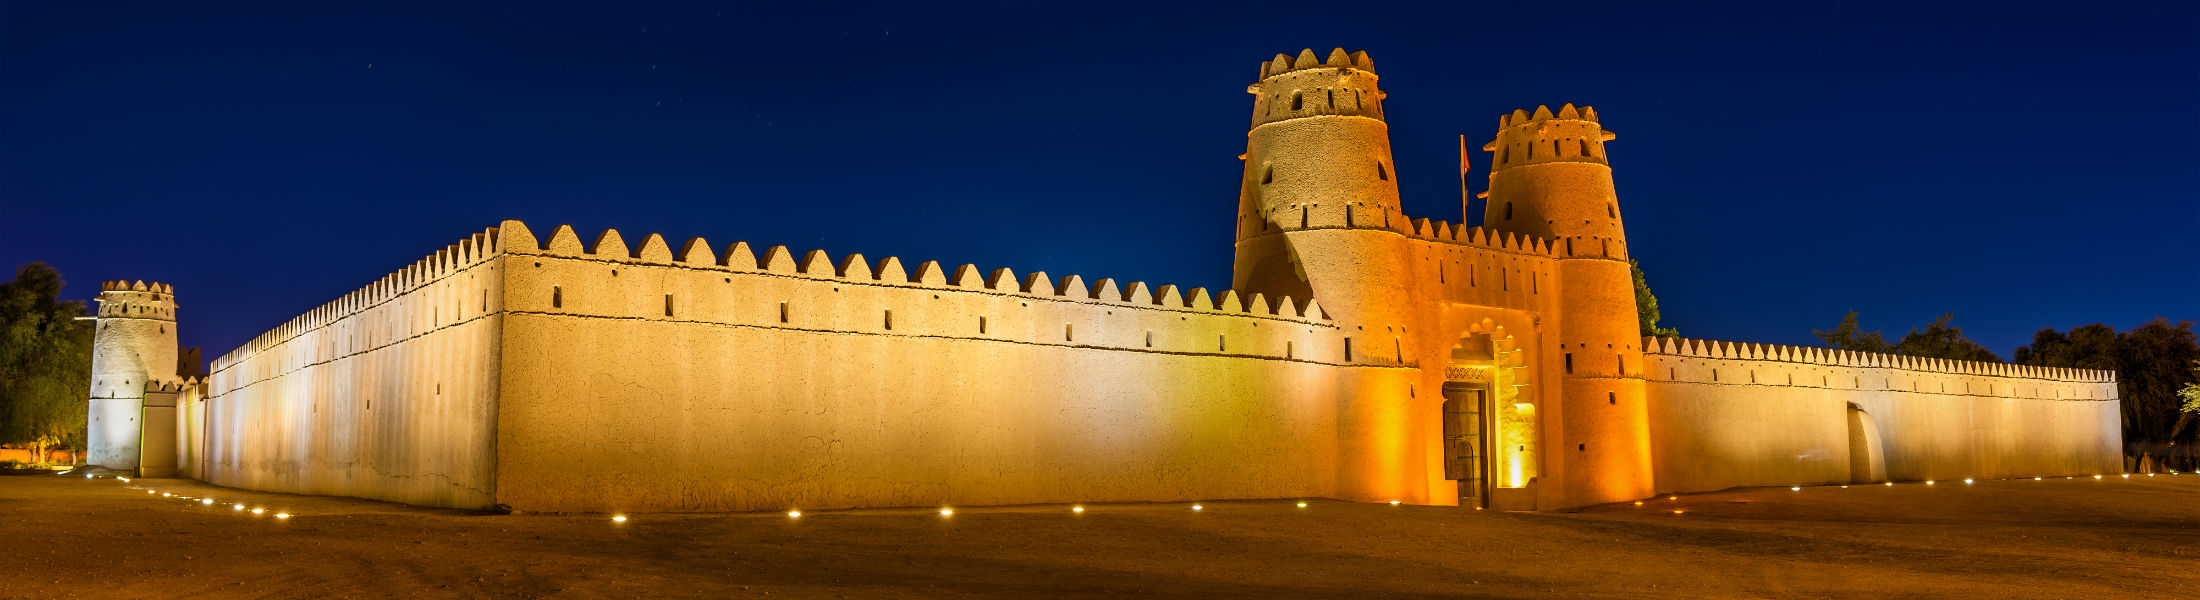 f Al Jahili Fort in Al Ain UAE